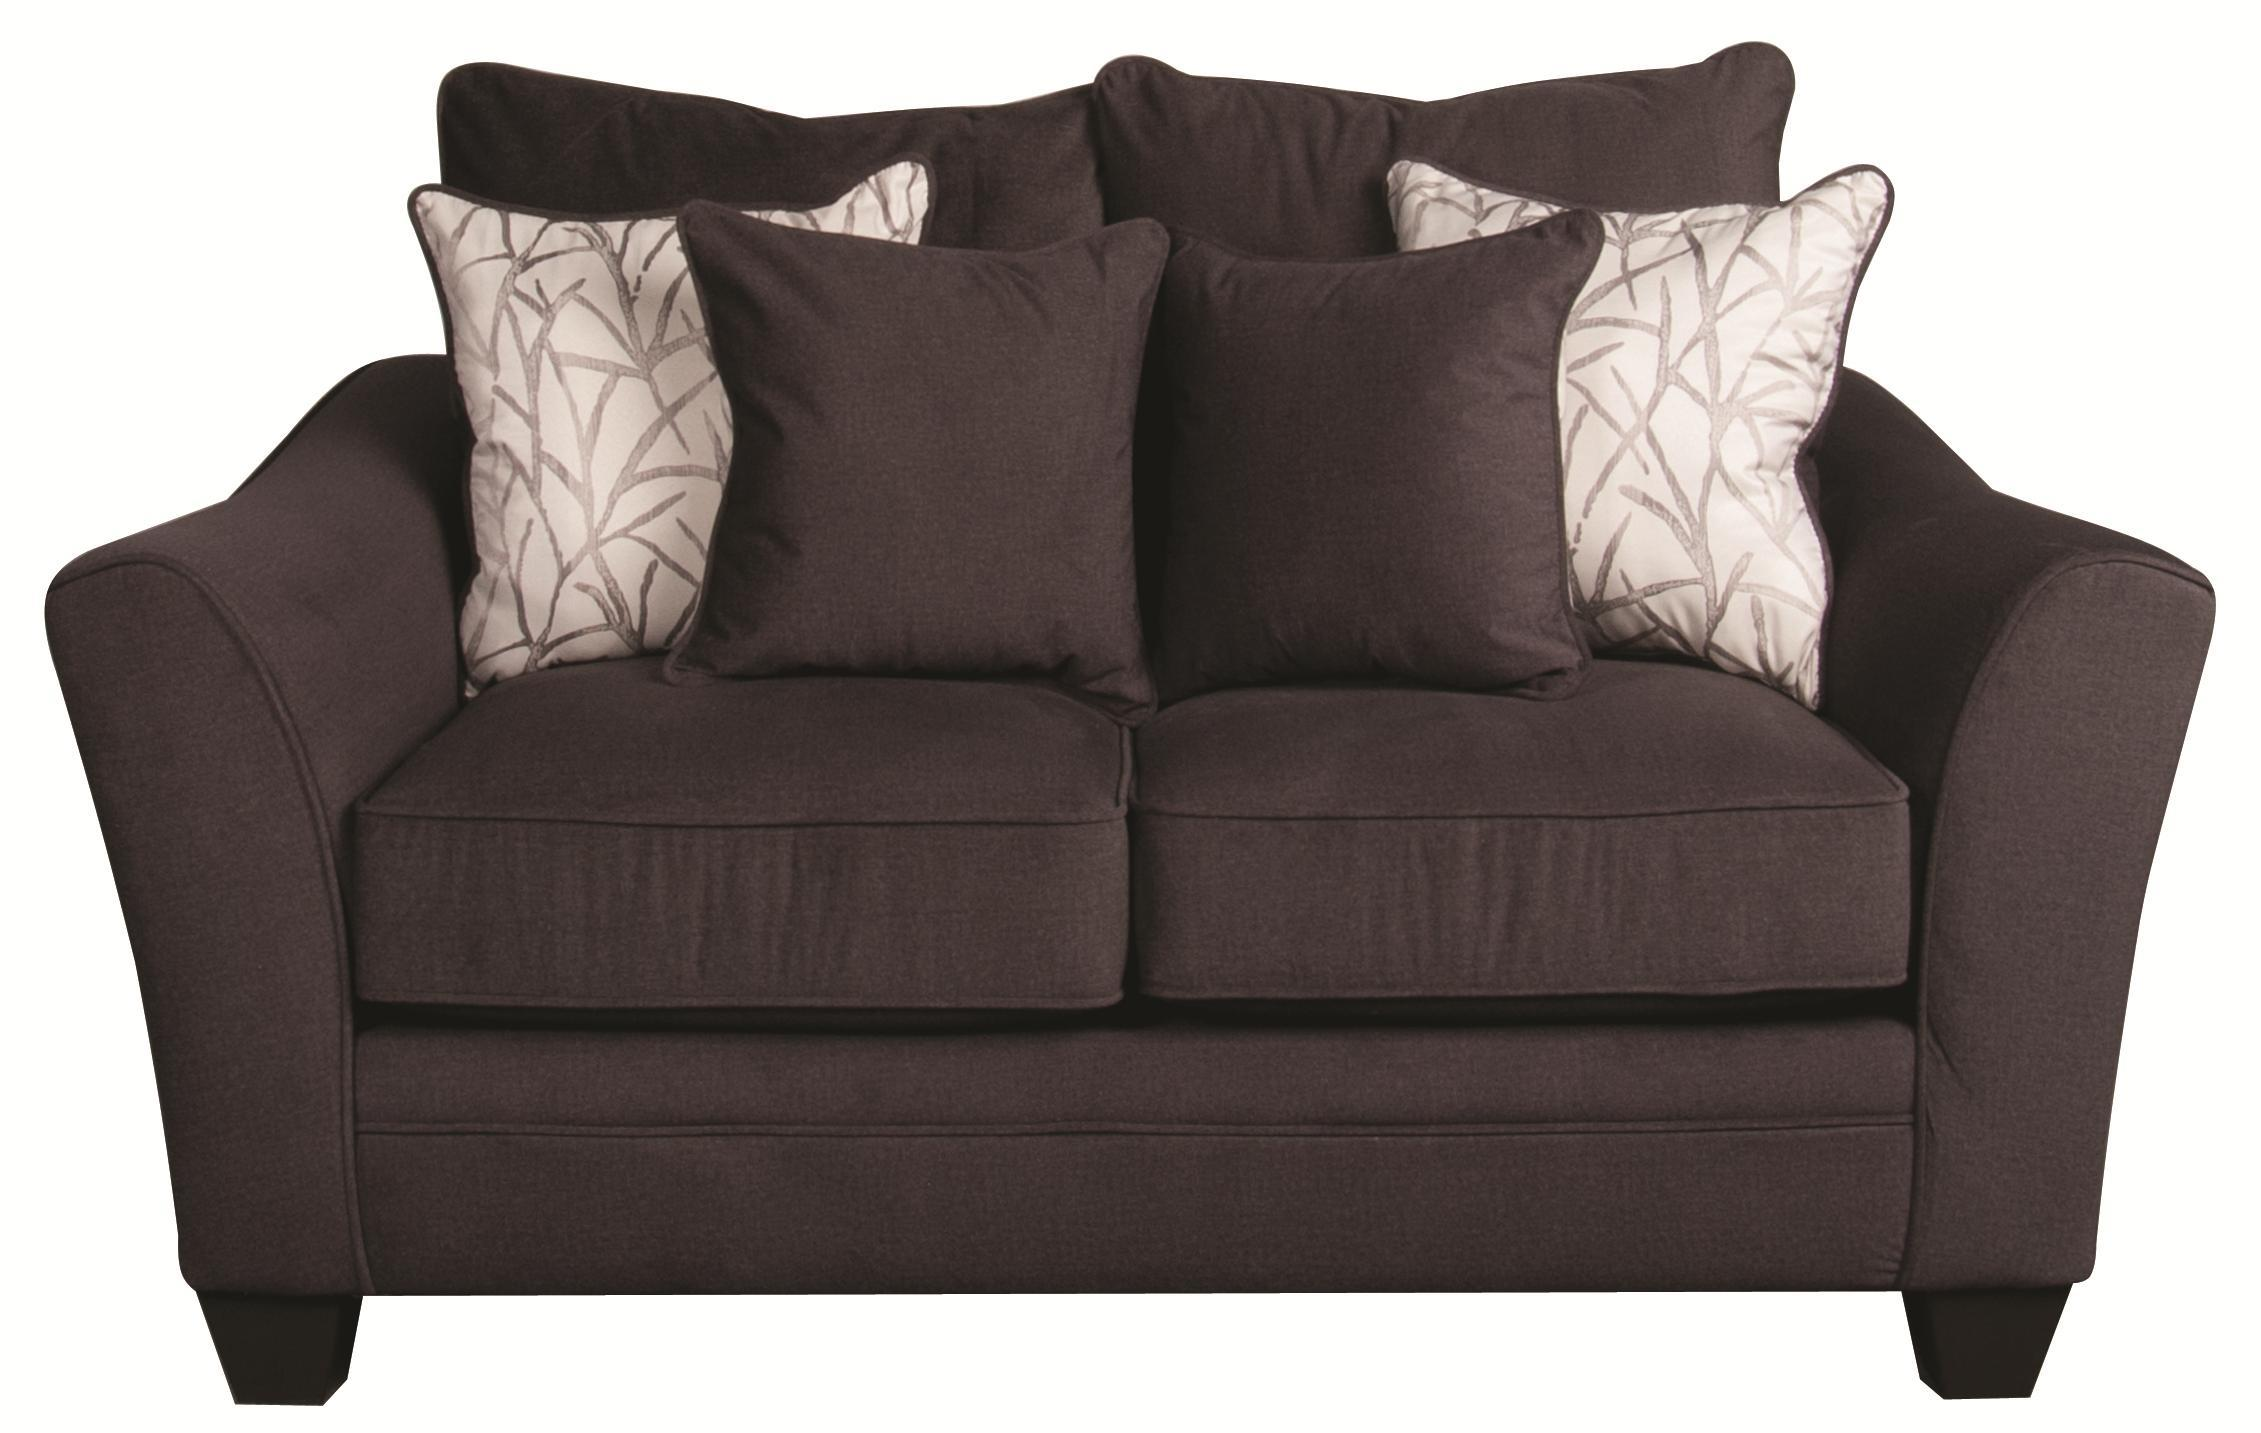 Morris Home Furnishings Rachel Rachel Loveseat - Item Number: 104828756